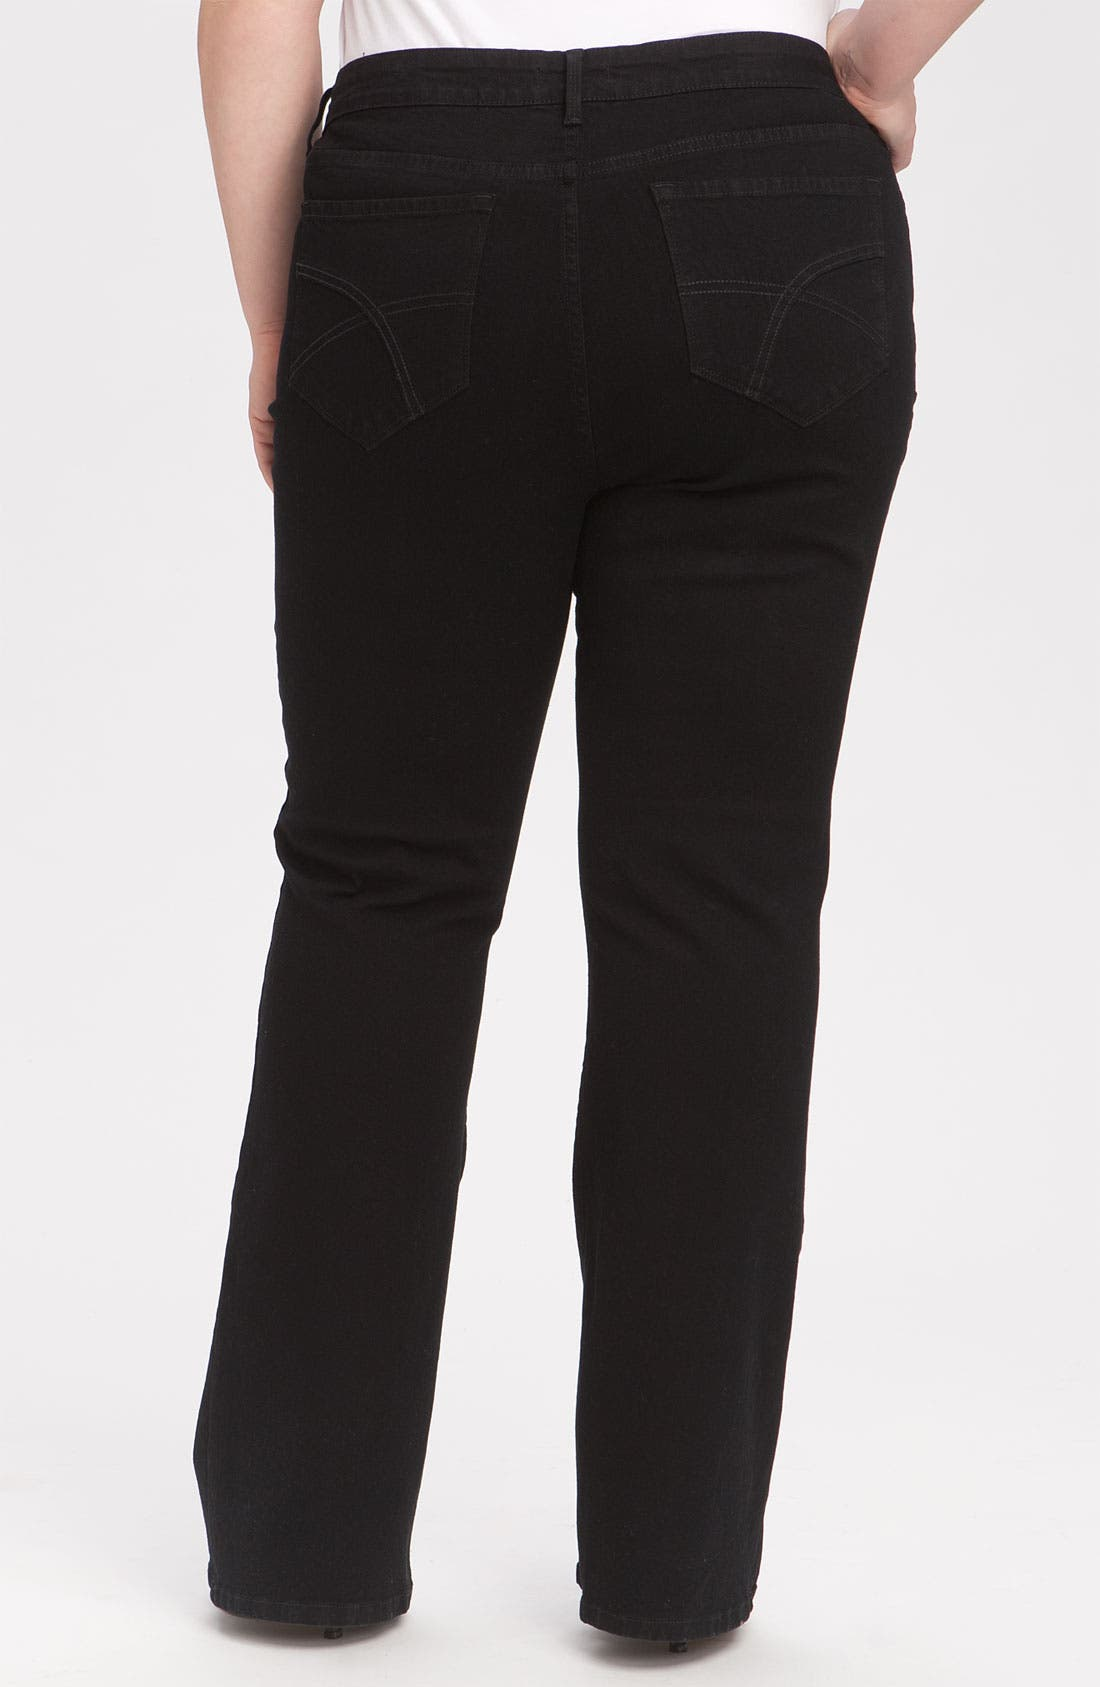 Alternate Image 2  - NYDJ 'Barbara' Stretch Bootcut Jeans (Black) (Plus Size & Petite Plus)